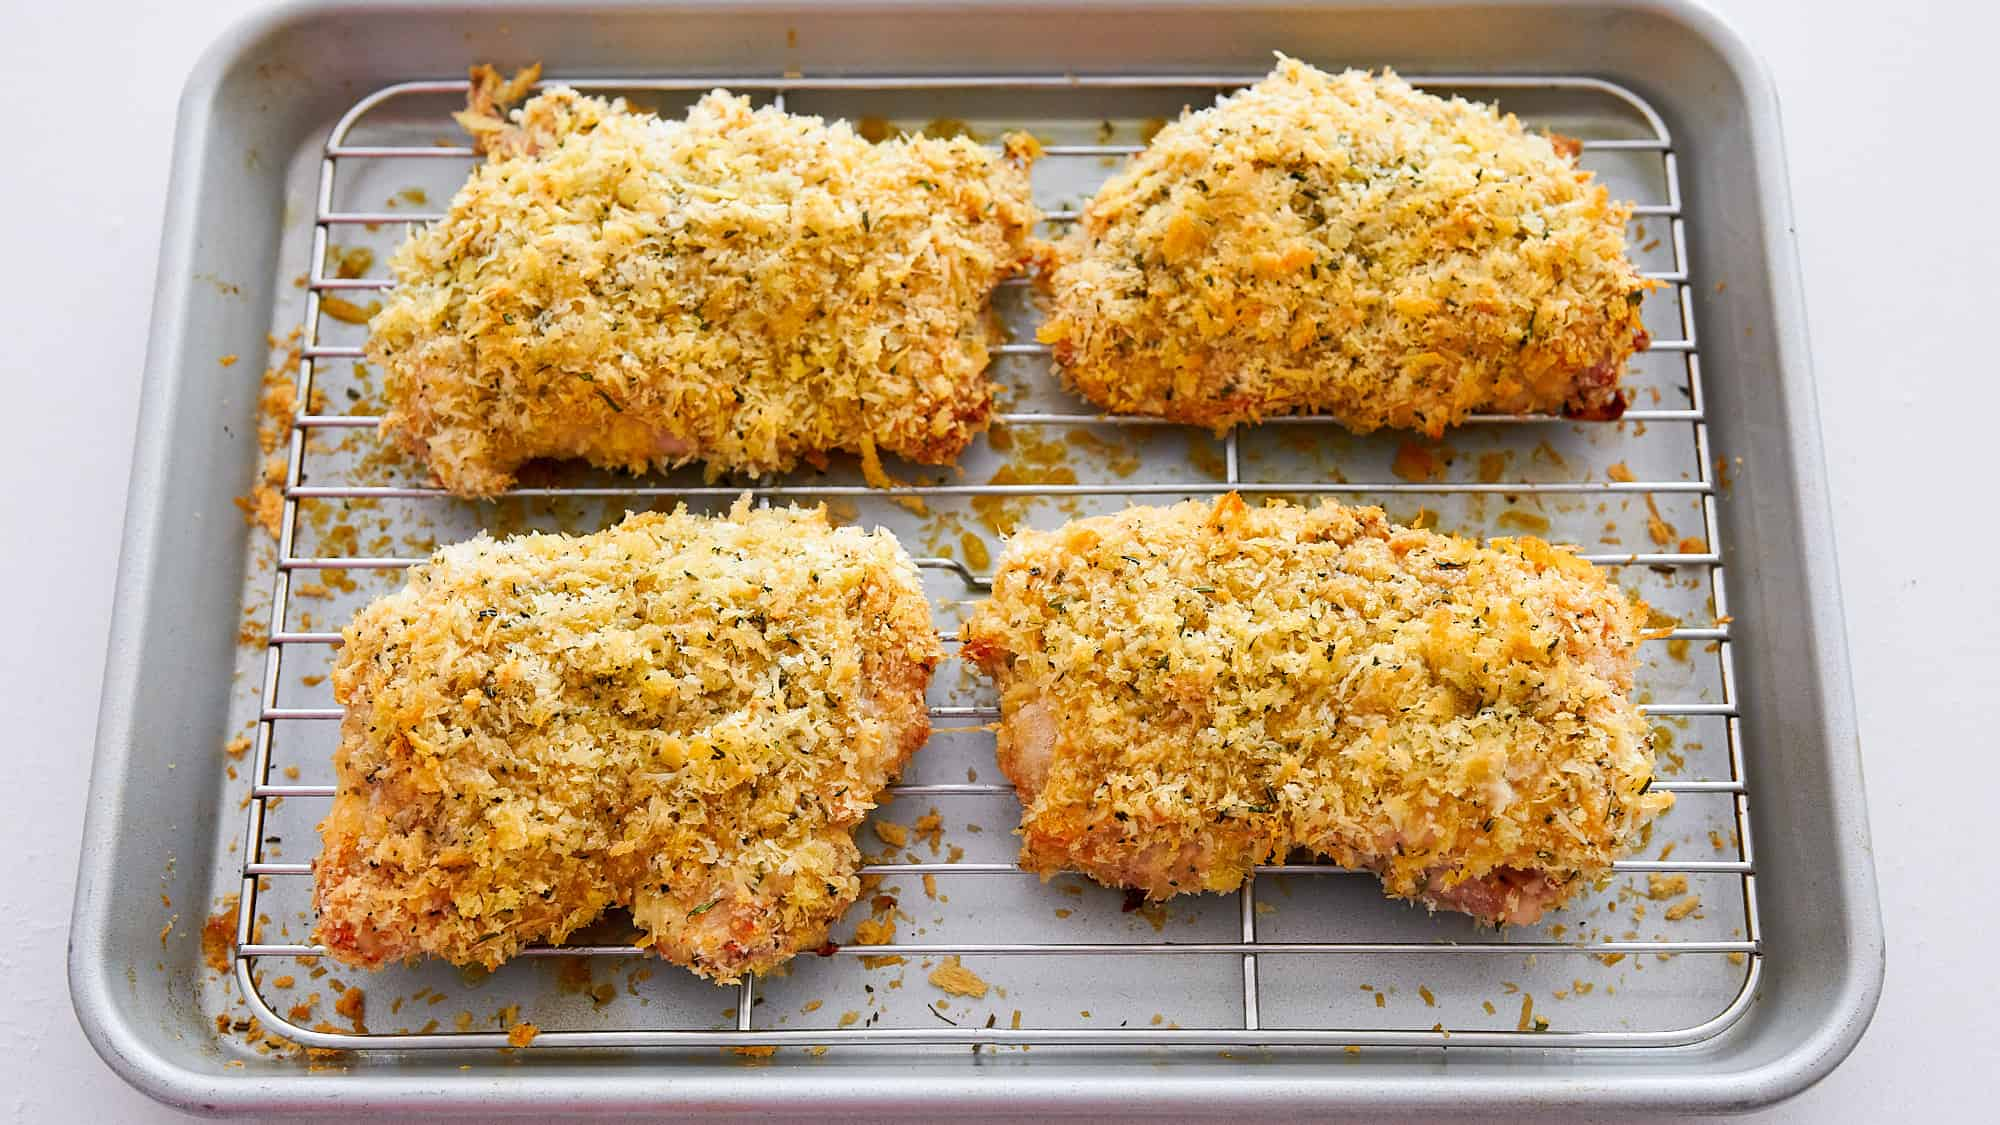 The baked chicken parmesan cutlets turn out crisp and flavorful.